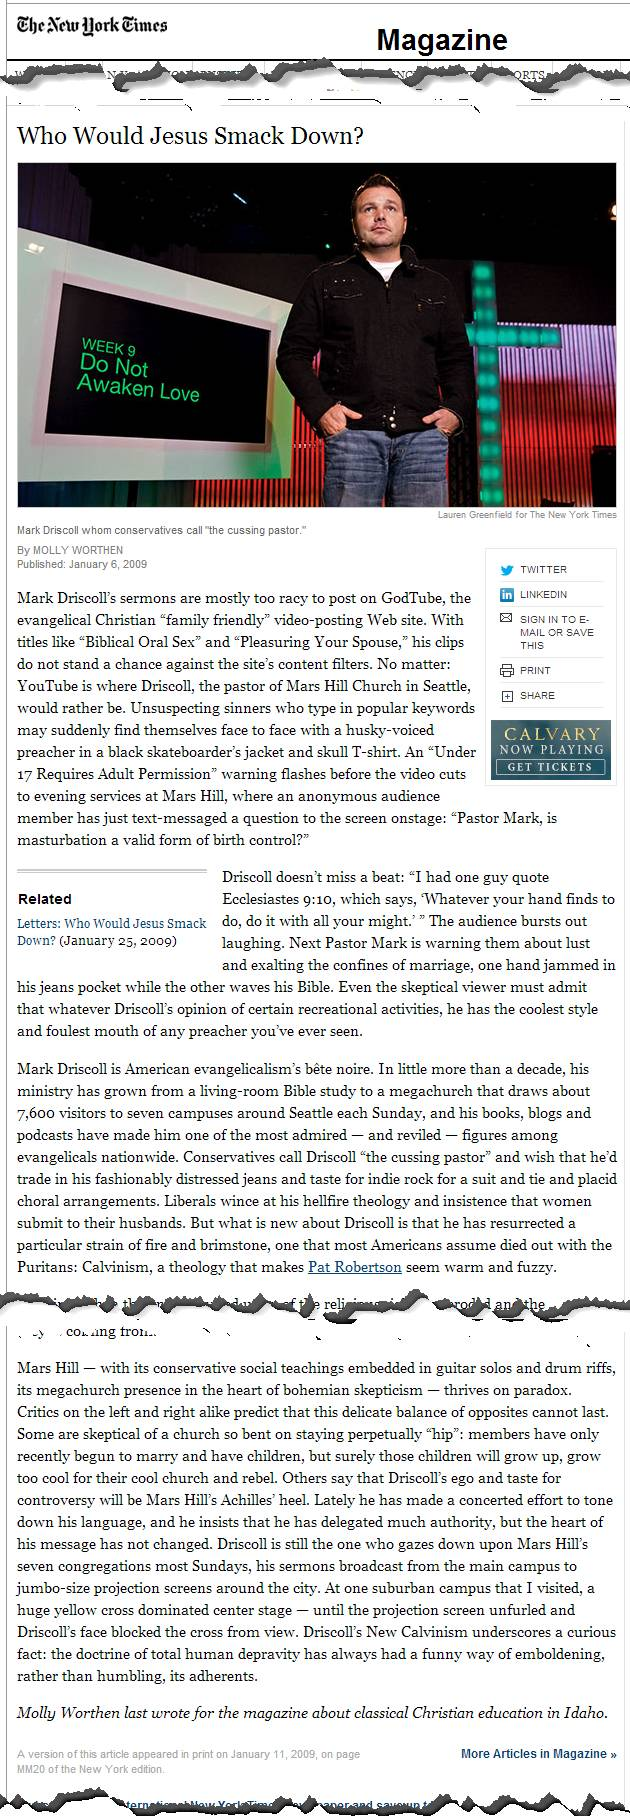 Screenshot of New York Times article about Mark Driscoll